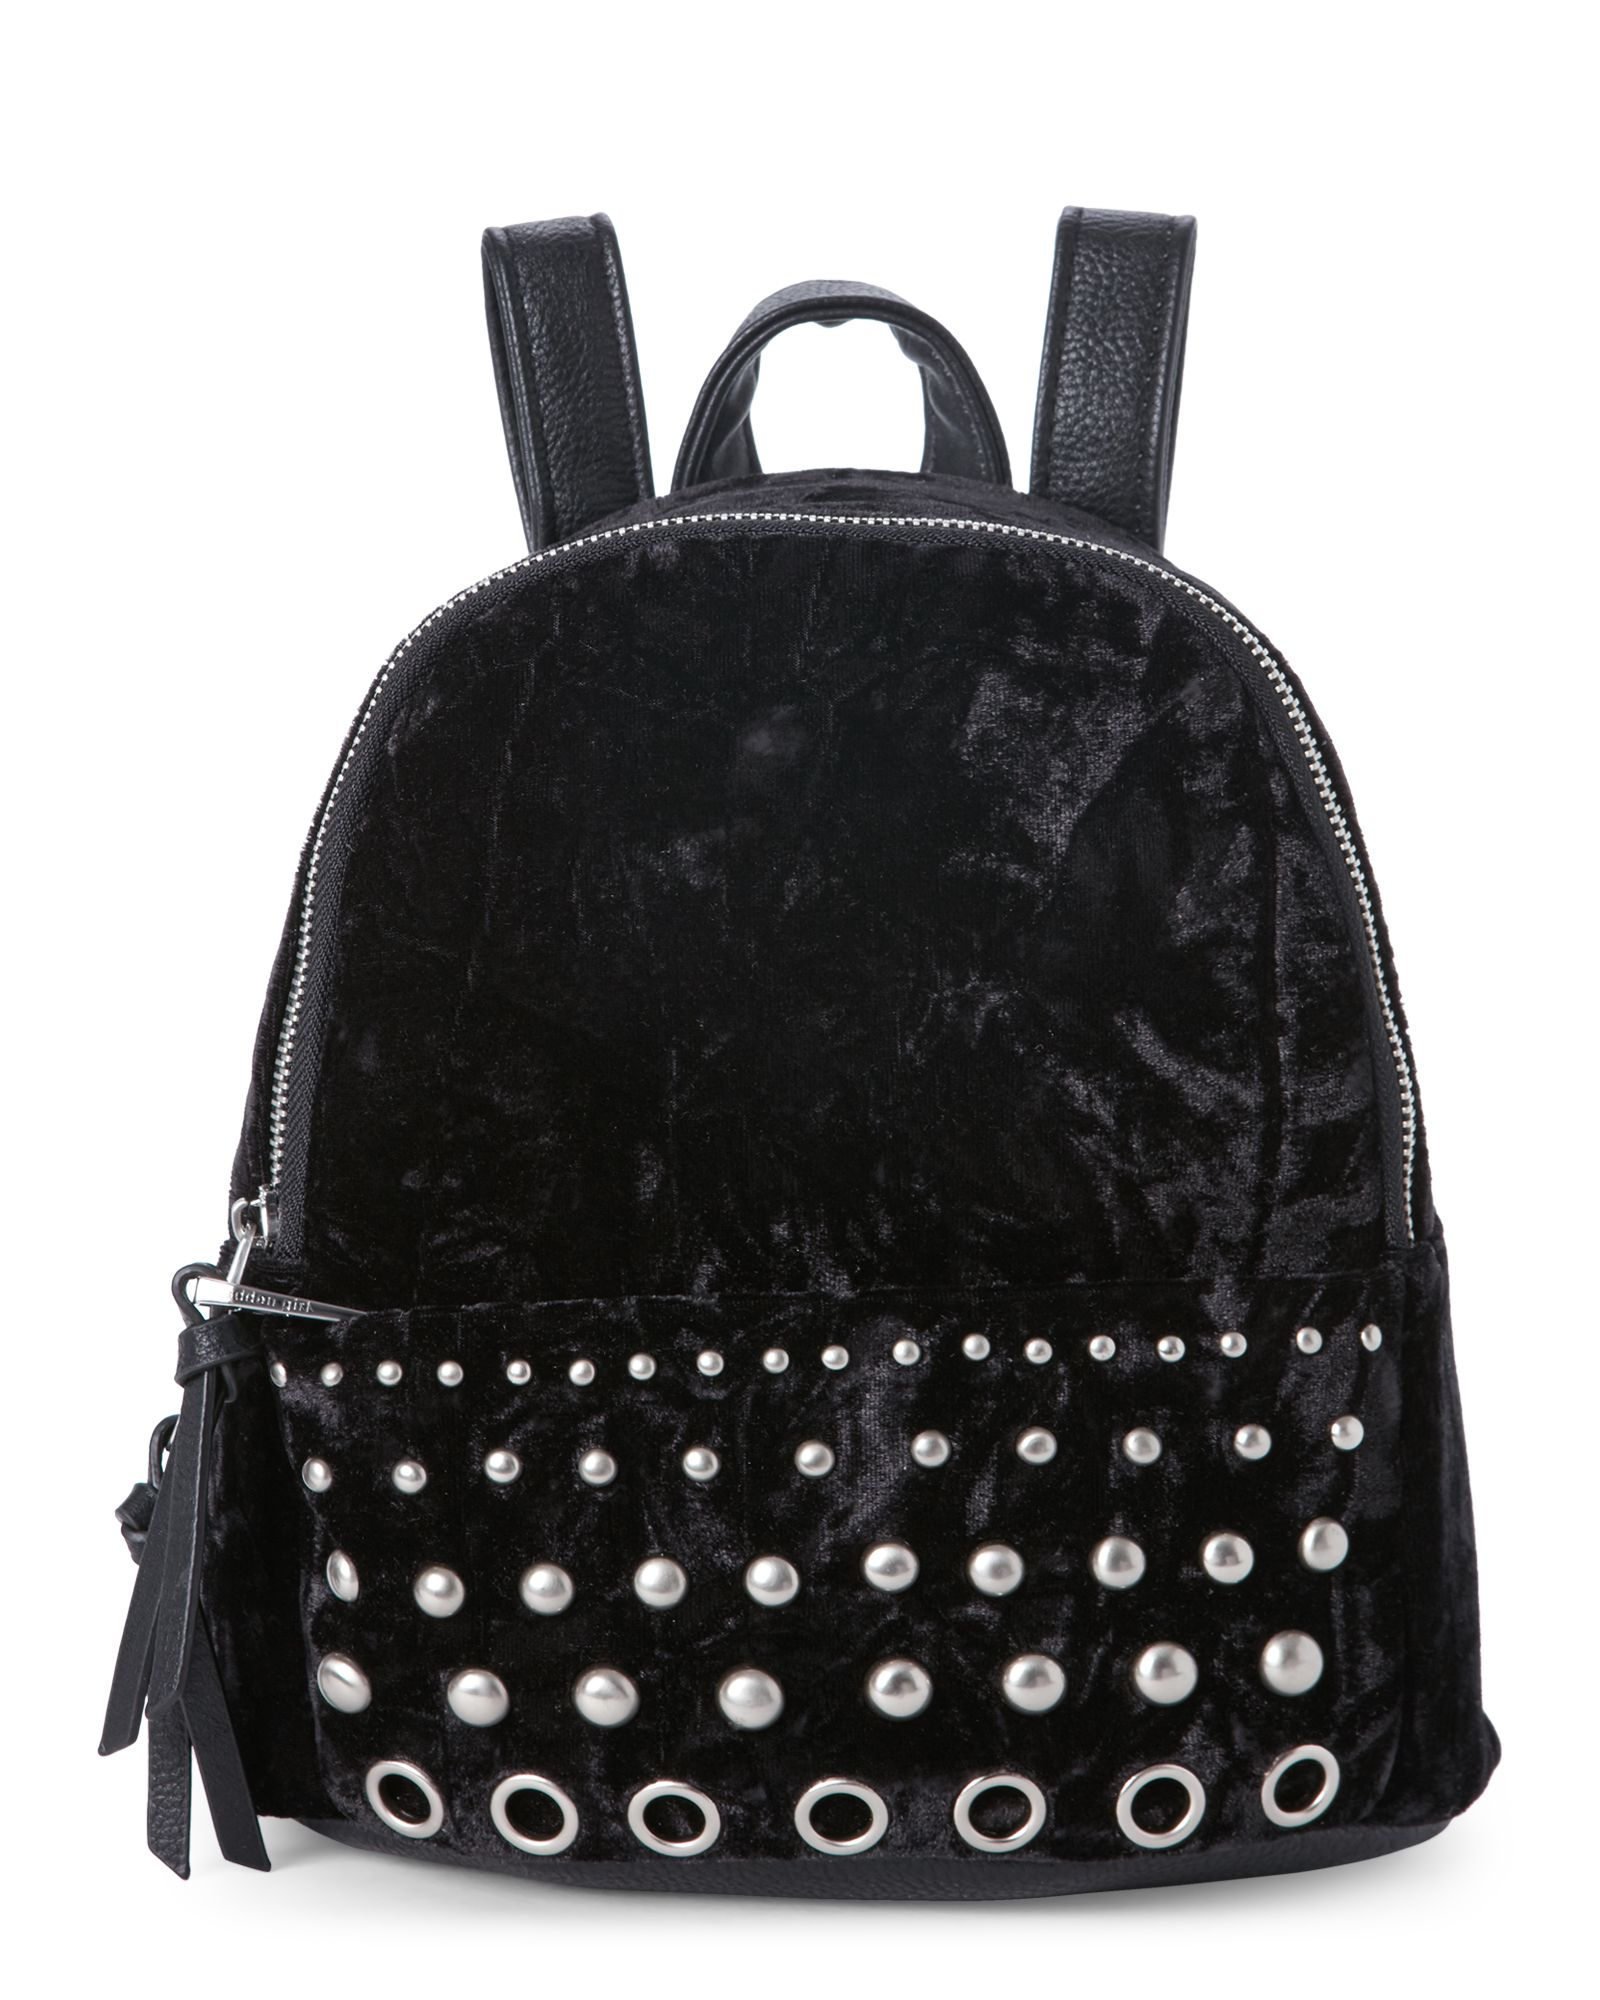 9e610341094f Madden Girl Black Kore Studded Crushed Velvet Mini Backpack ...